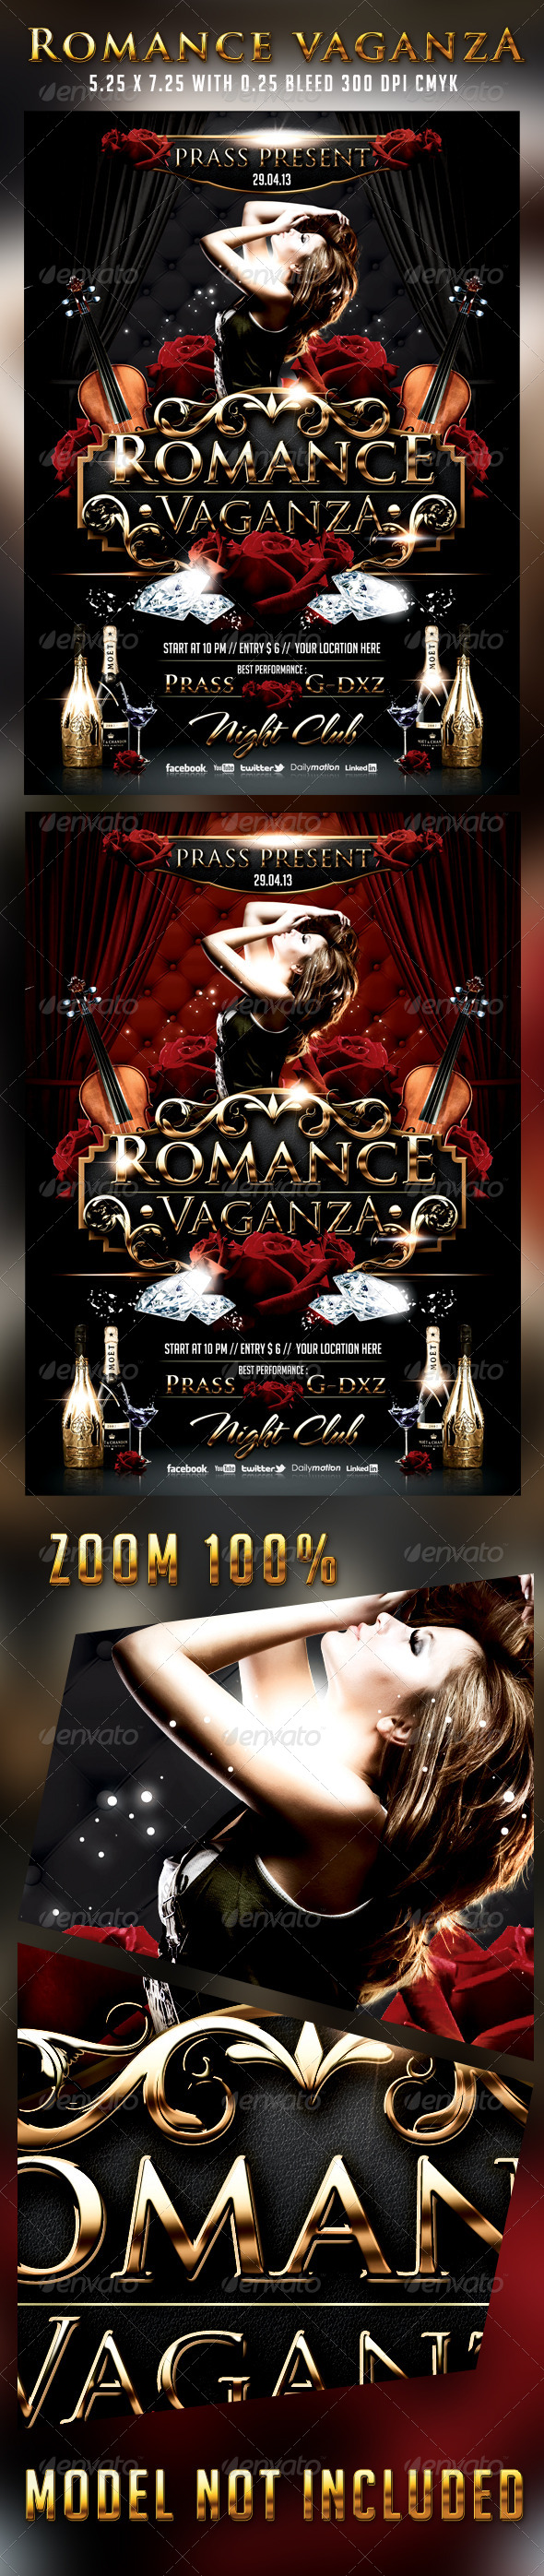 Romance Vaganza Flyer Template - Clubs & Parties Events